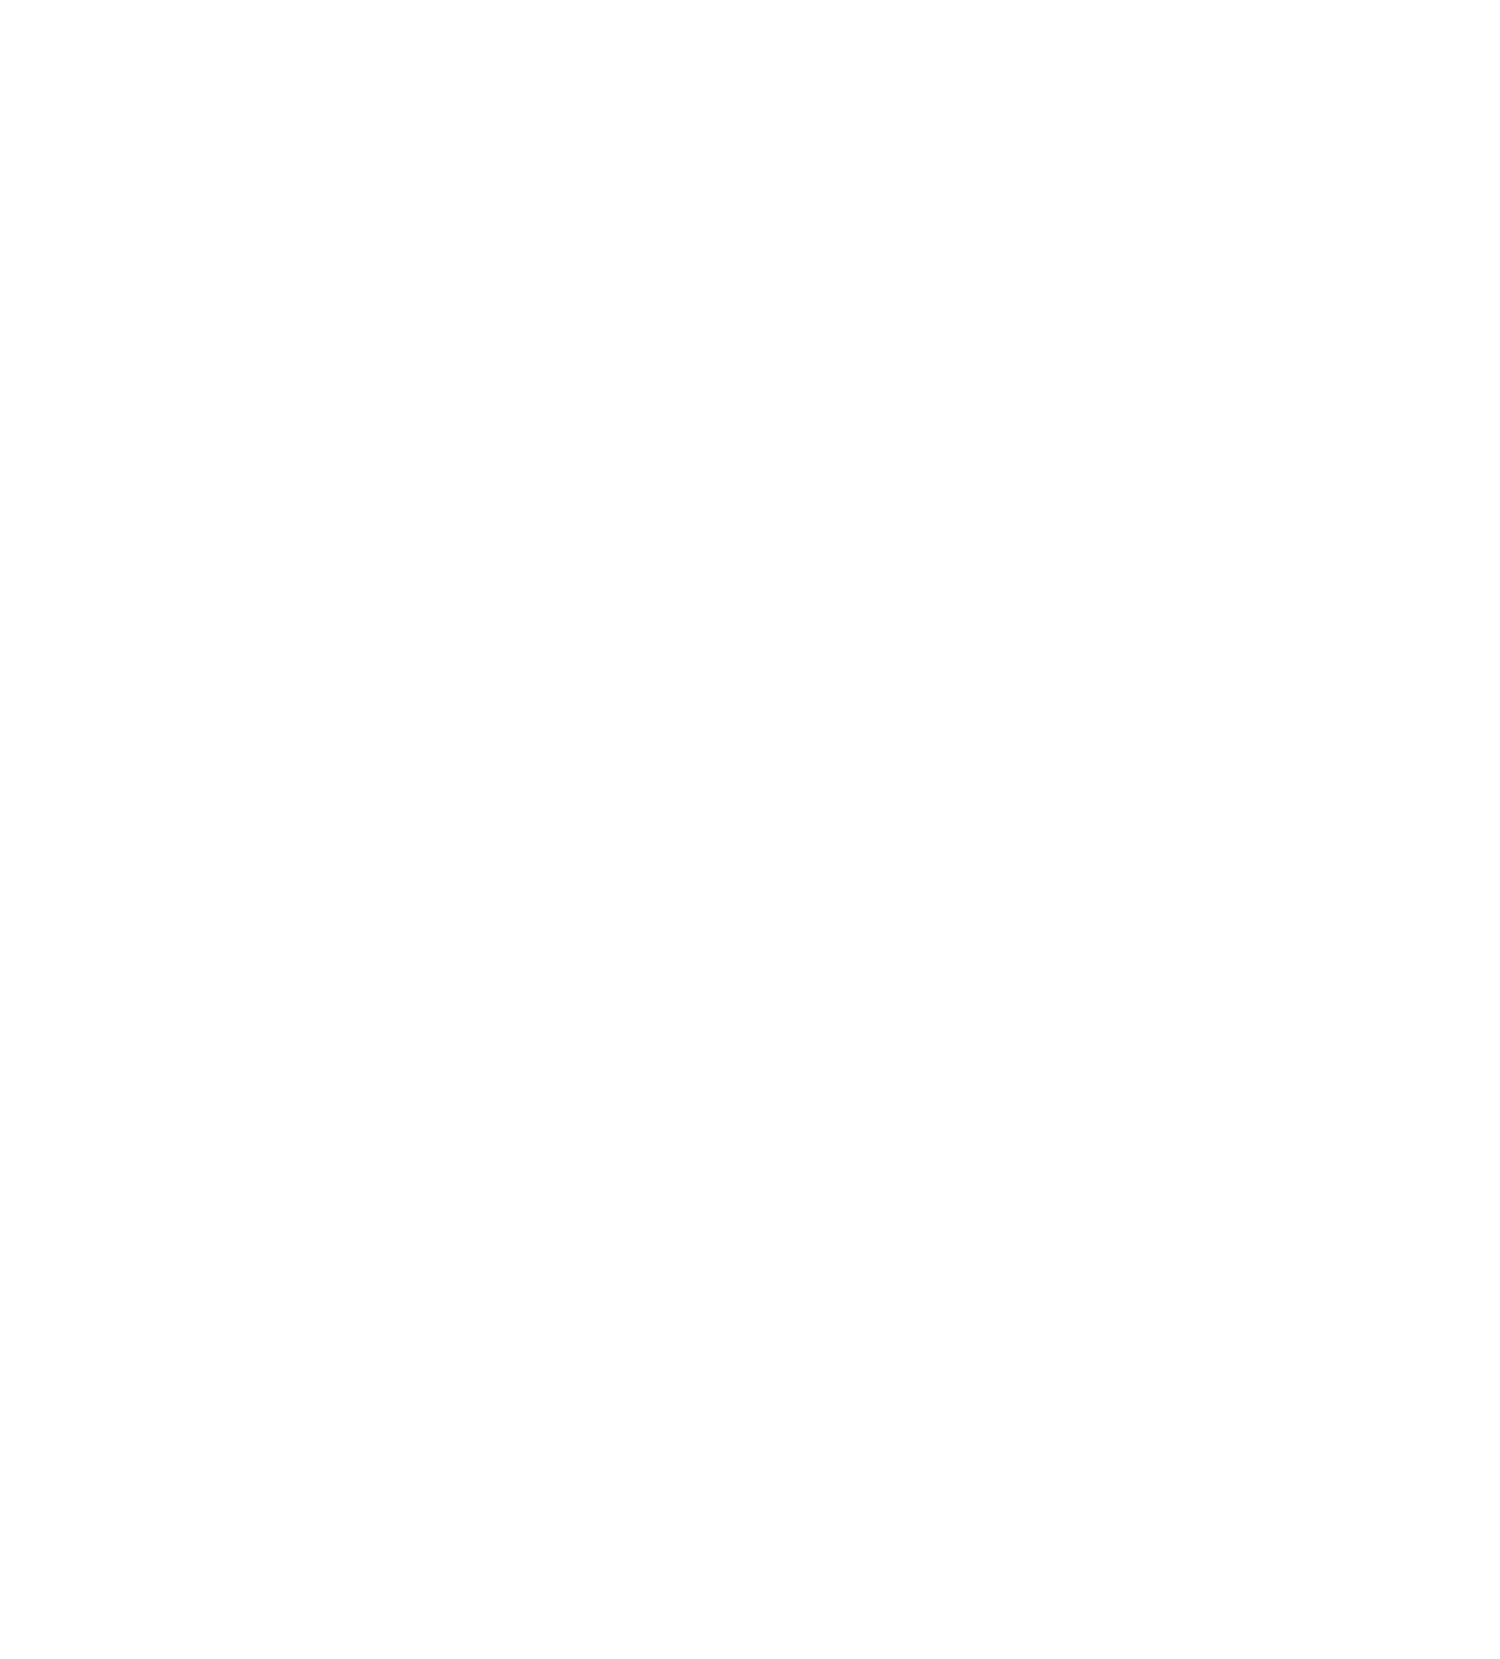 StateraArts